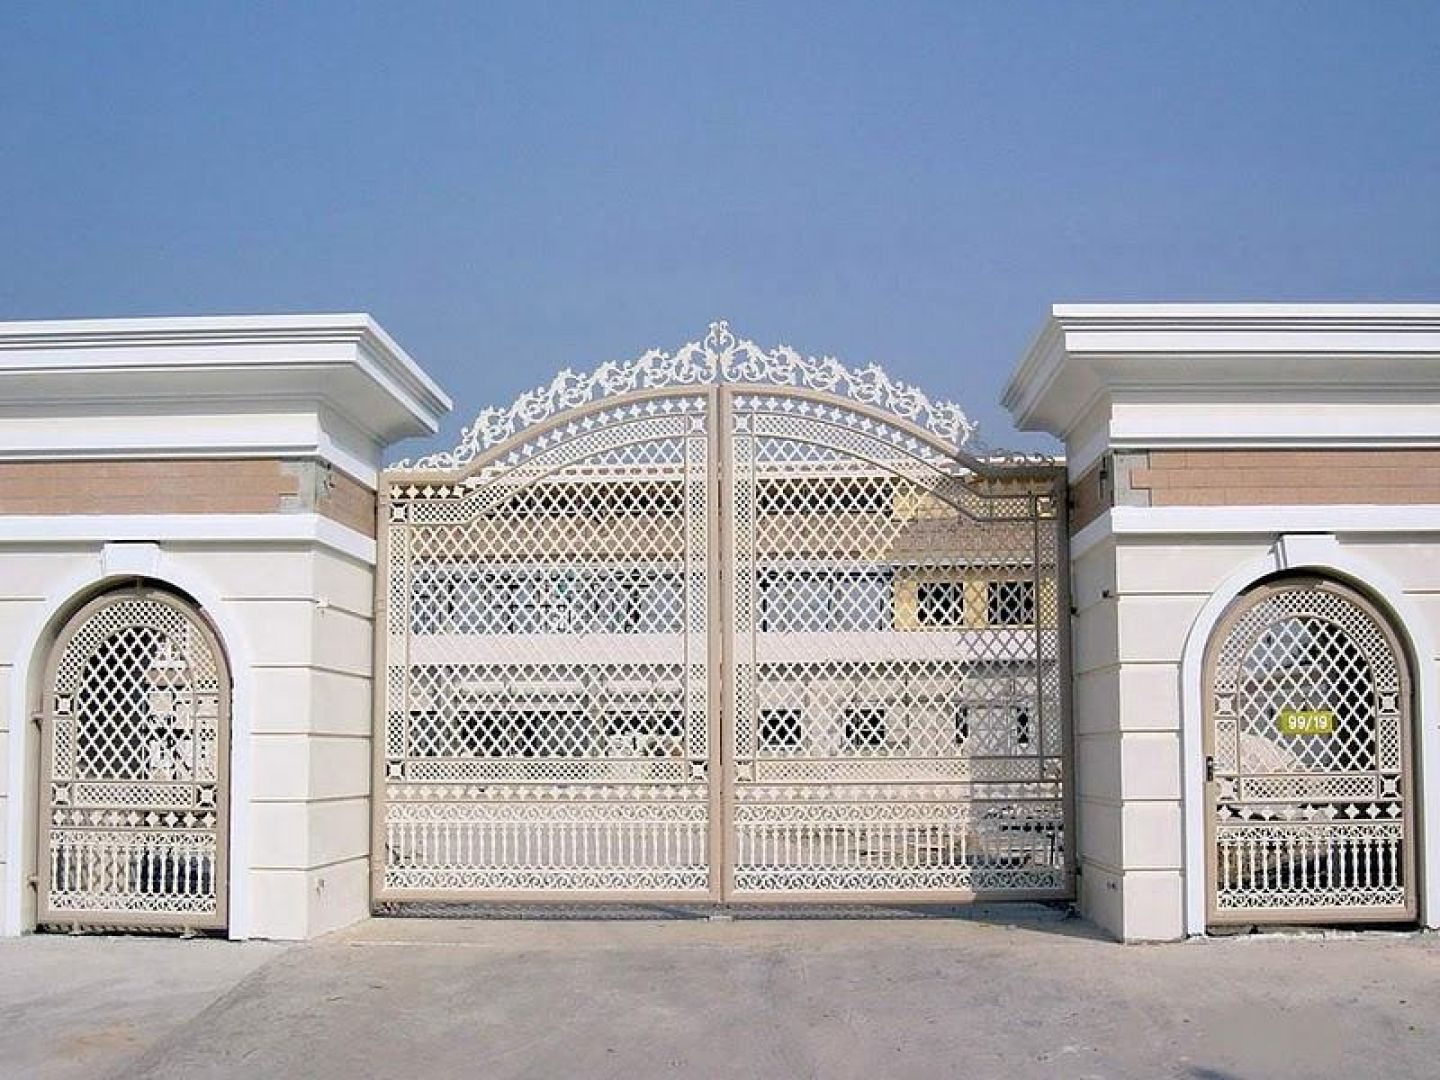 House Gate Design Modern Neo Classic House Gate And House Design Home Ides Pinterest Gate